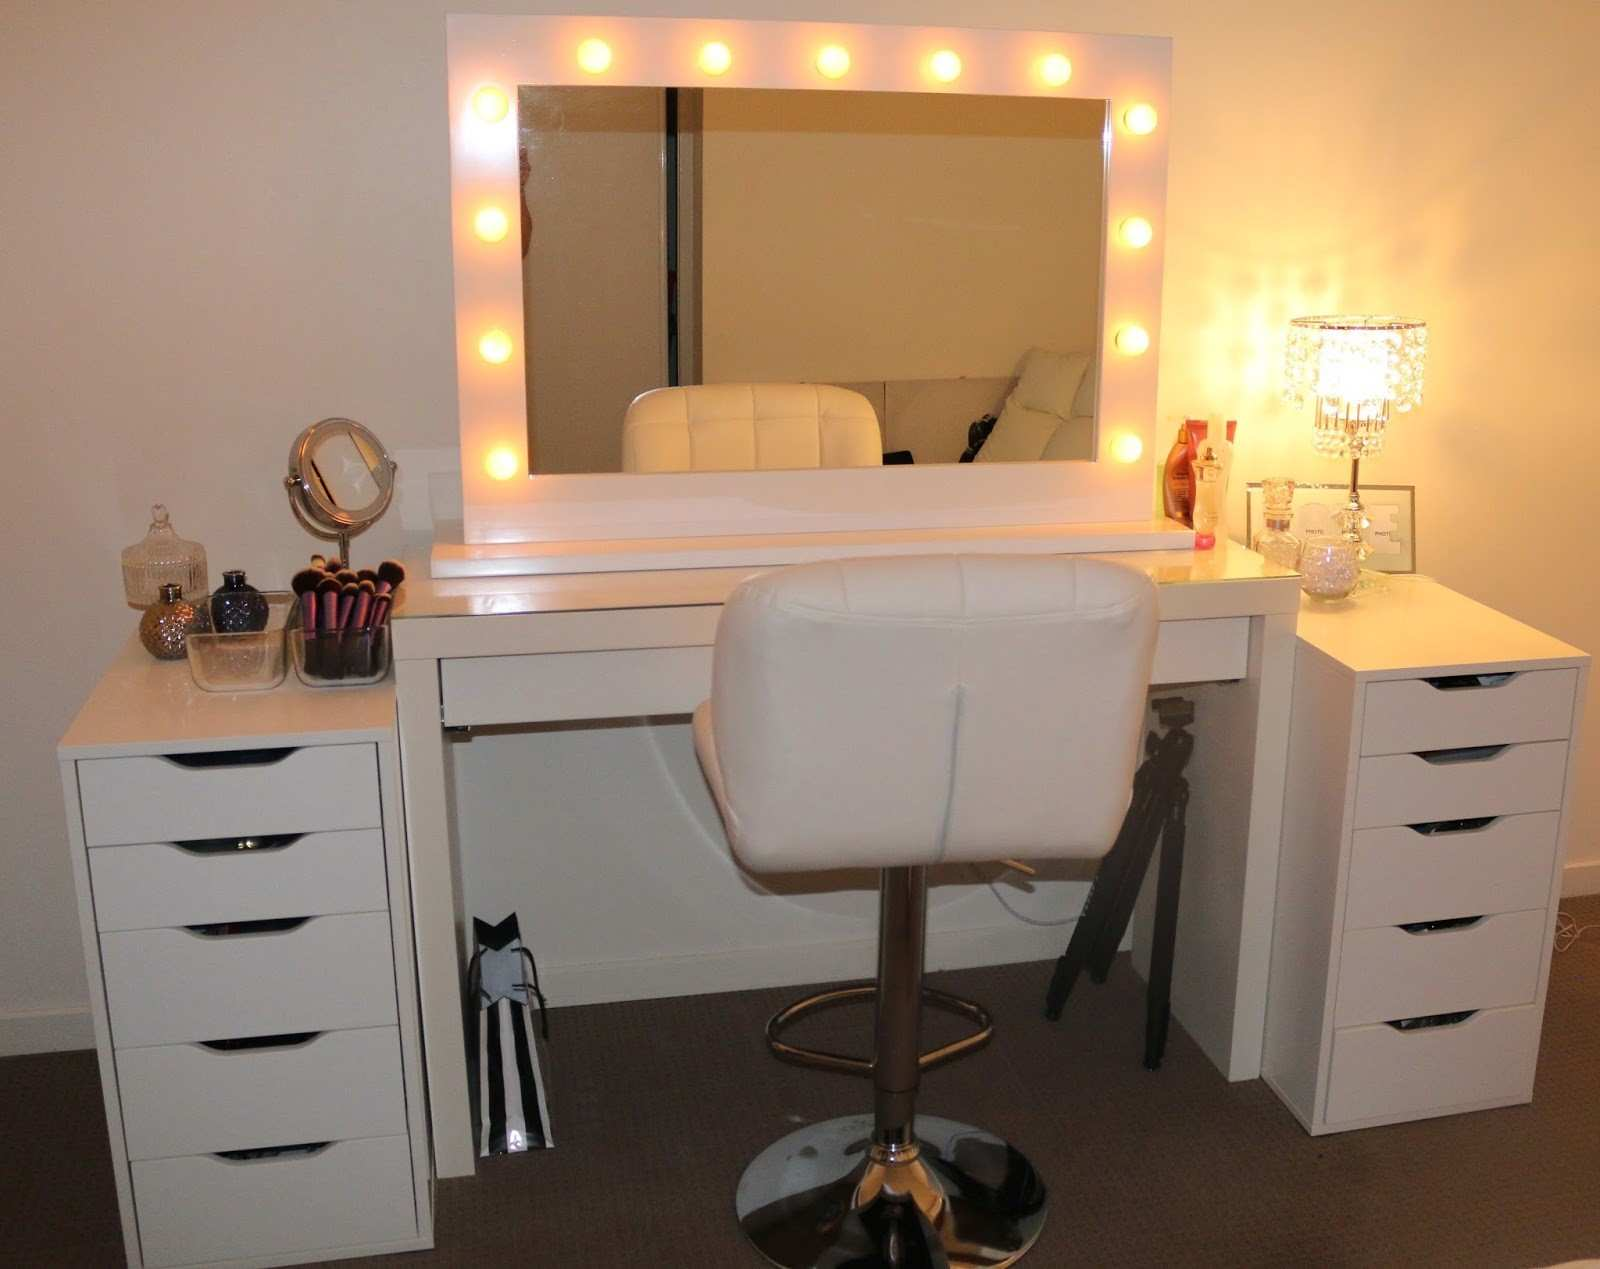 Decorative Wall Mirrors Ikea Best Of Ikea Bathroom Mirrors with Lights Luxury Vanity Mirror with Lights